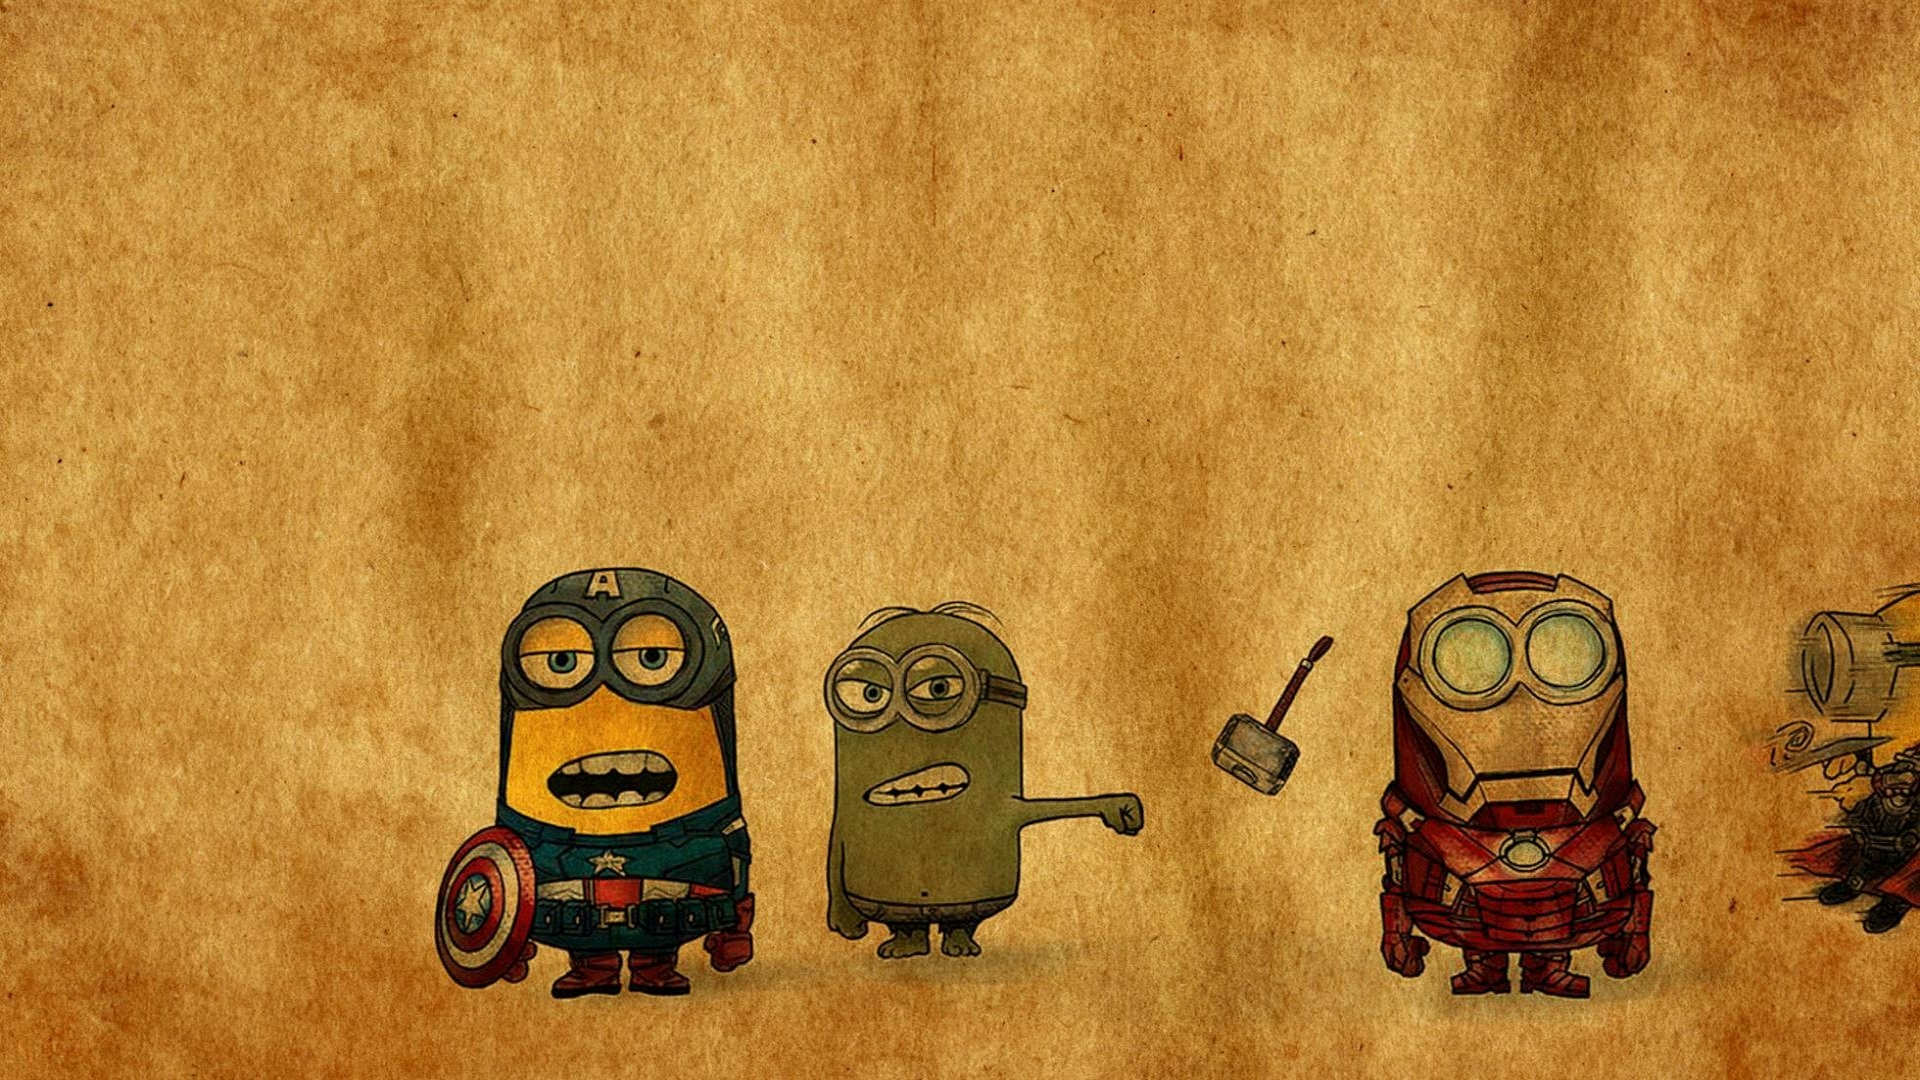 Minion Avenger Computer Wallpapers Desktop Backgrounds 1920x1080 1920x1080